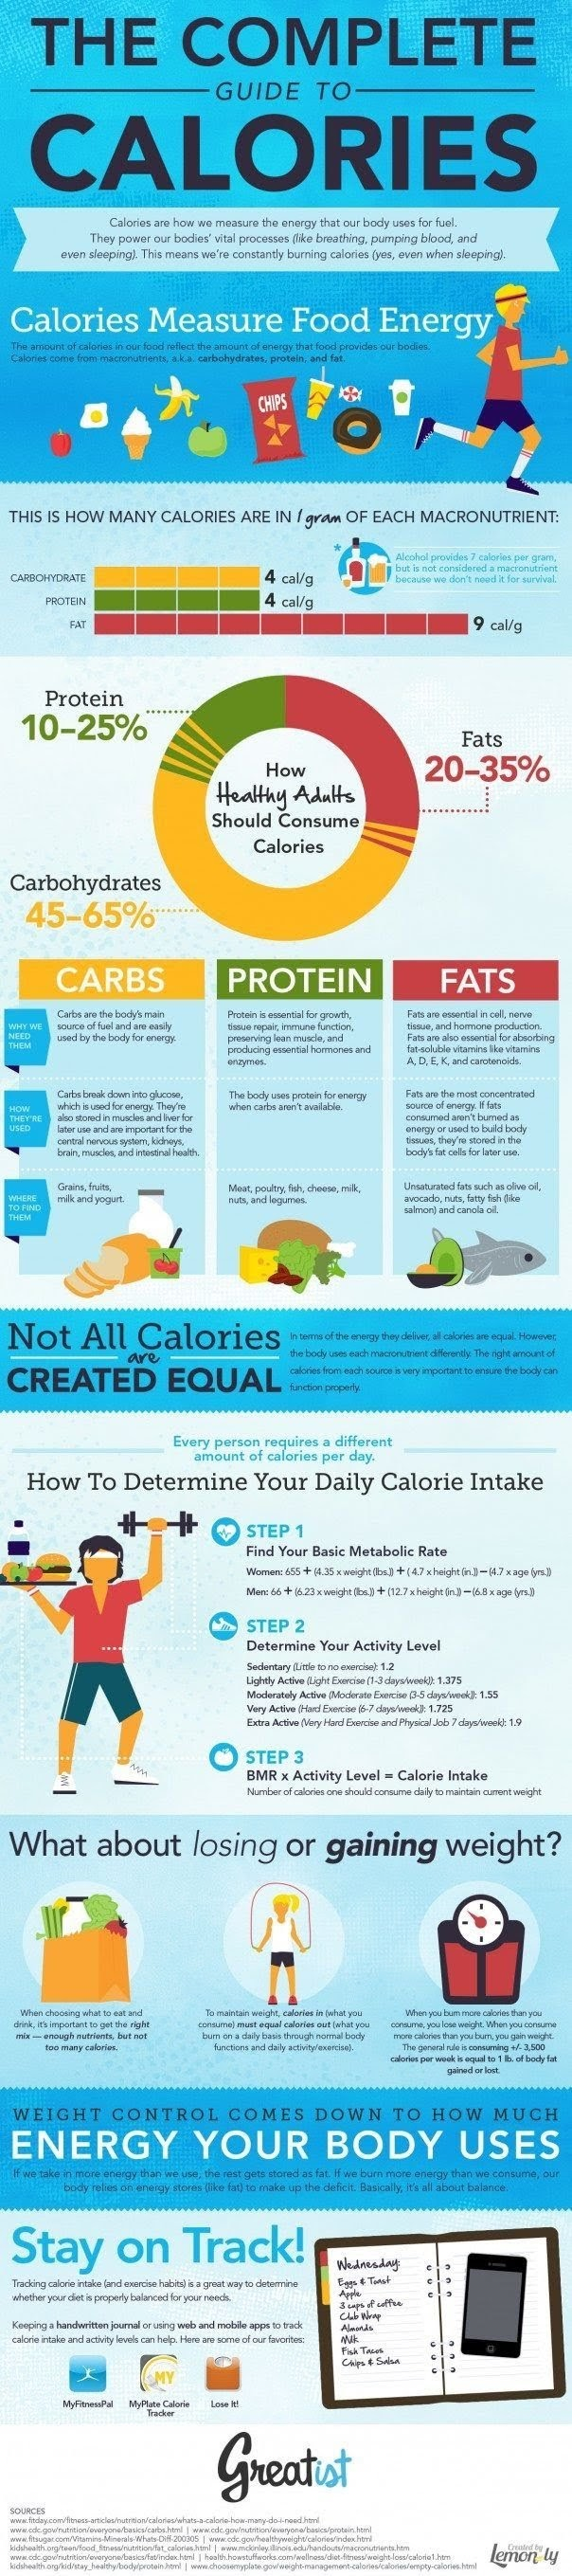 The Complete Guide To Calories #ingraphic